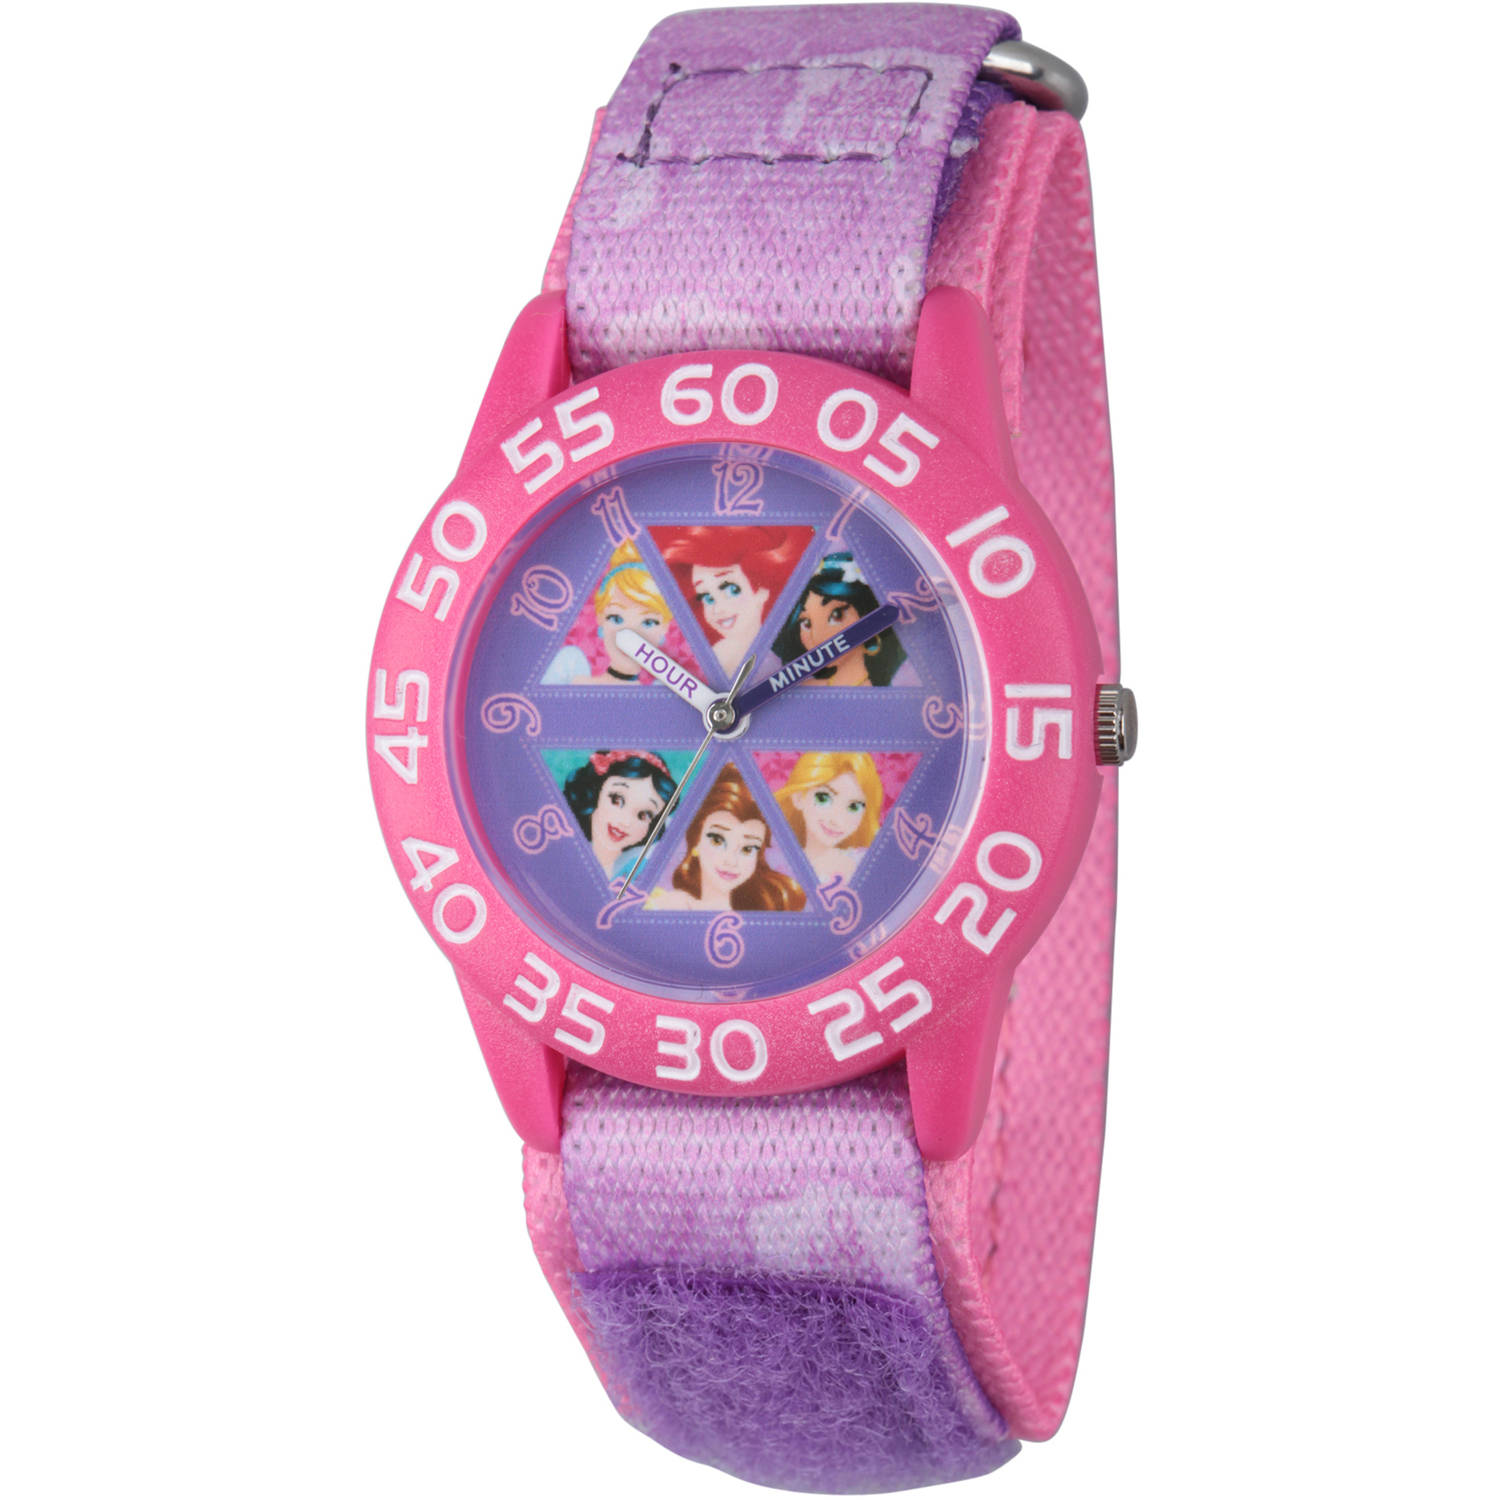 Disney Princess Cinderella, Rapunzel, Ariel, Jasmine, Snow White and Belle Girls' Pink Plastic Time Teacher Watch, Purple Hook and Loop Stretchy Nylon Strap with Pink Backing